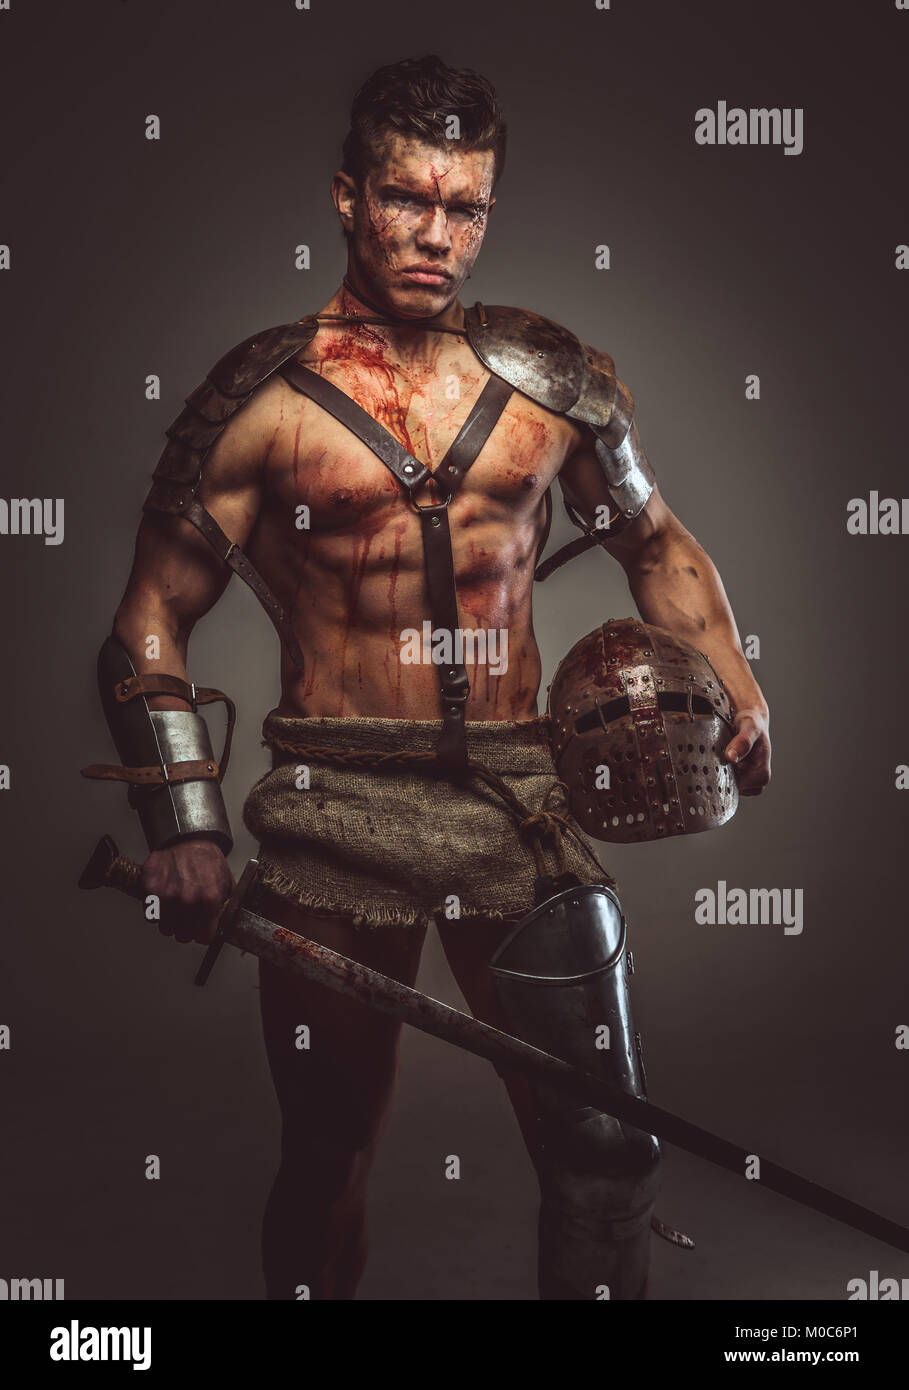 Muscular bloody gladiator with sword and helmet. - Stock Image